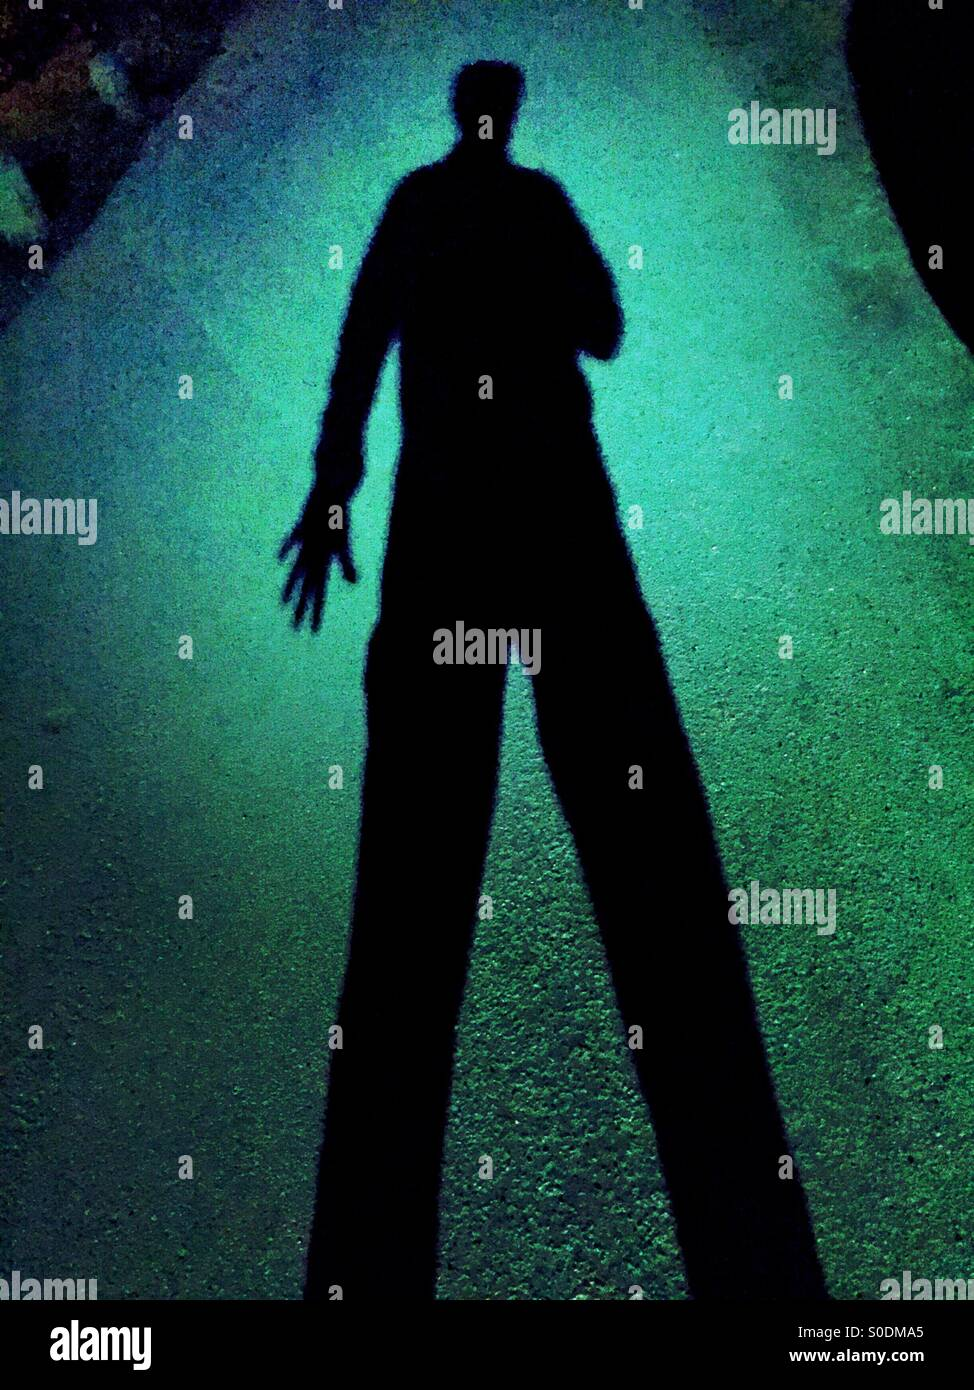 Gloomy shadow of a one armed man - Stock Image